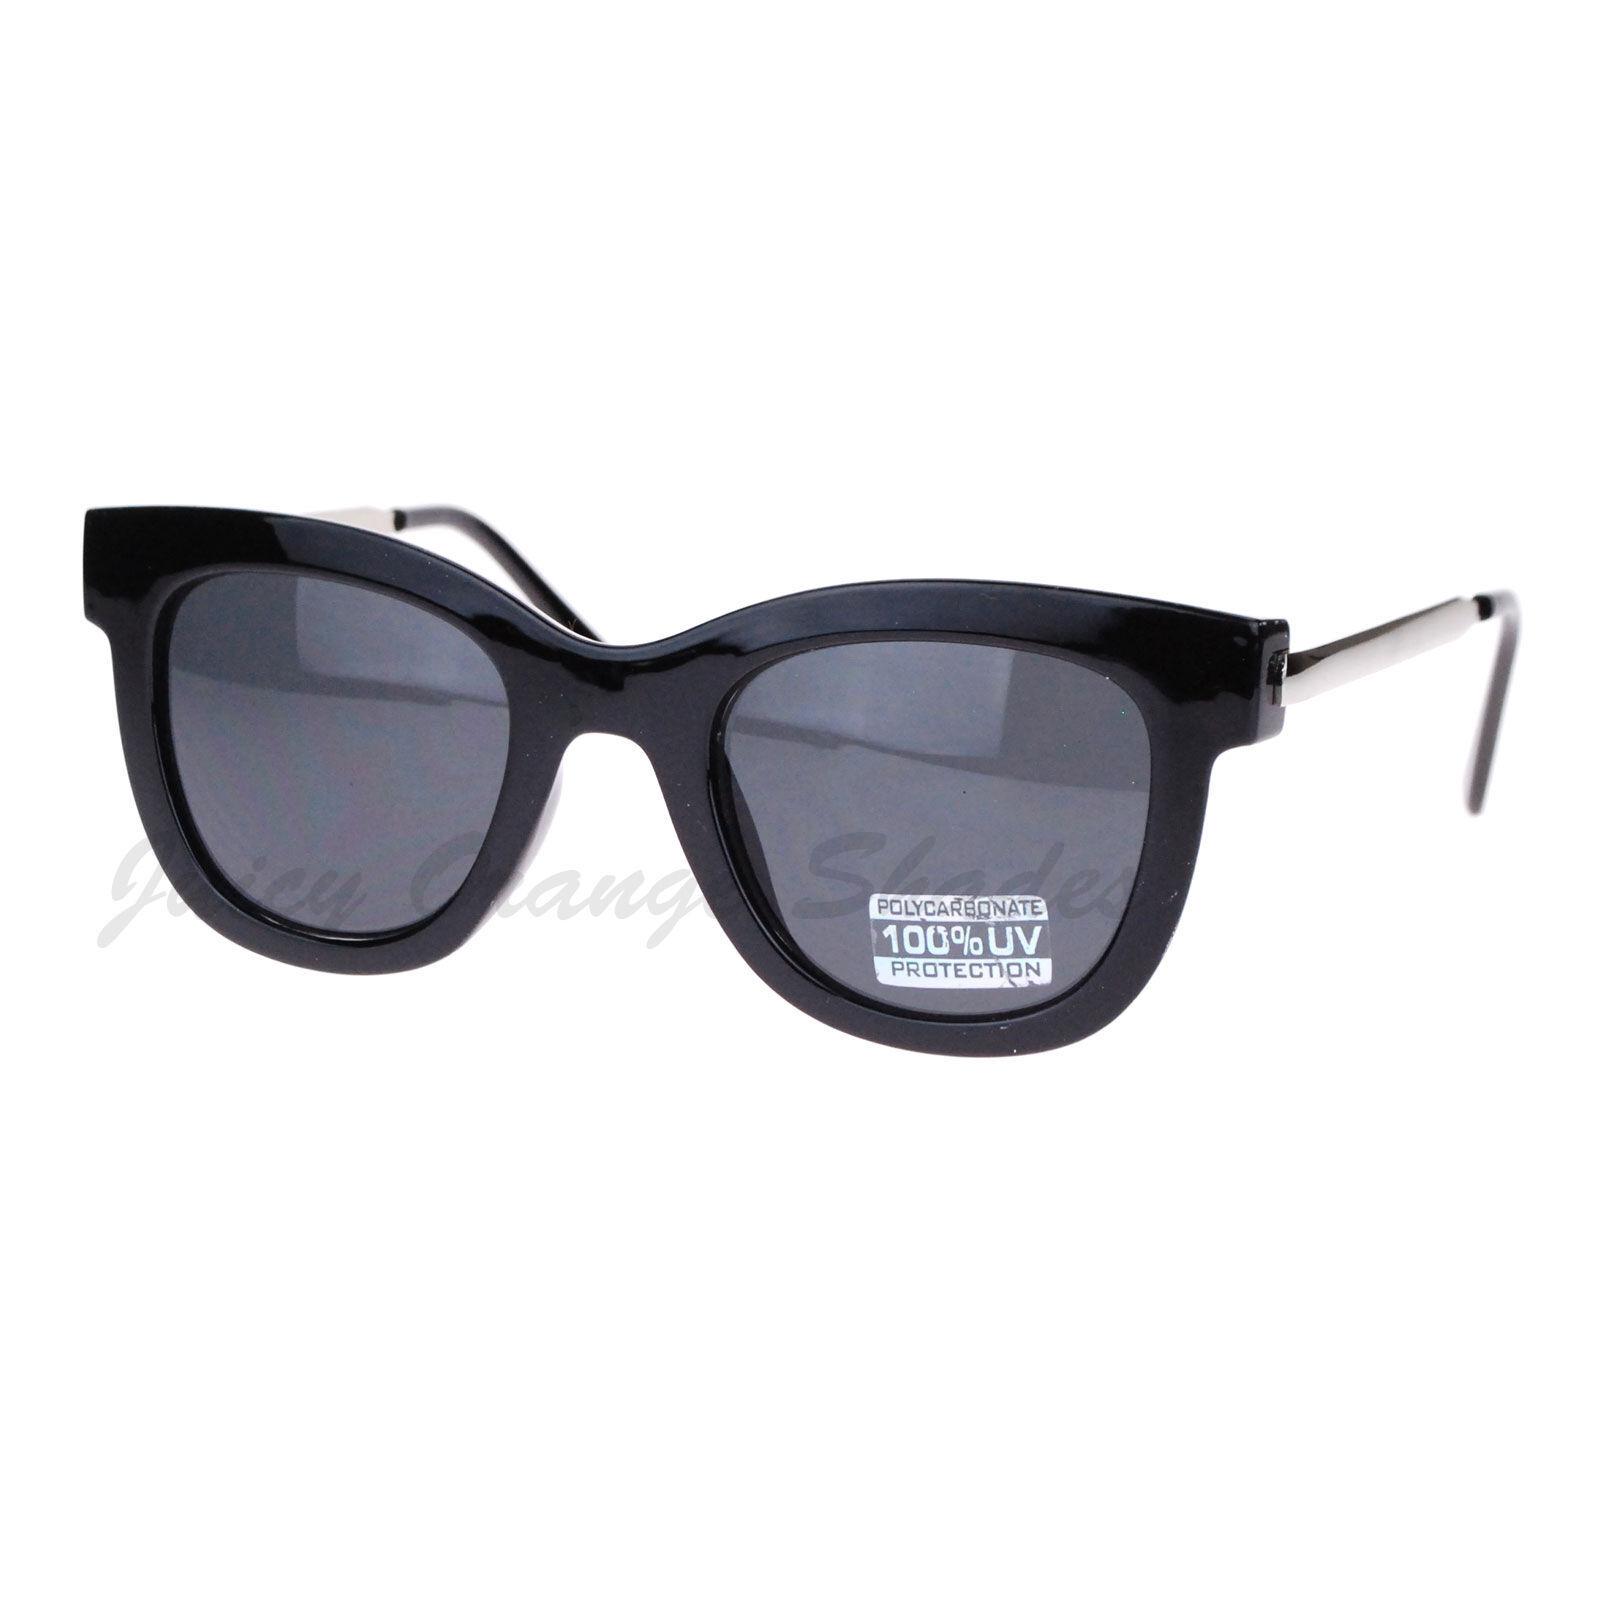 Vintage Square Frame Sunglasses Women's Designer Fashion